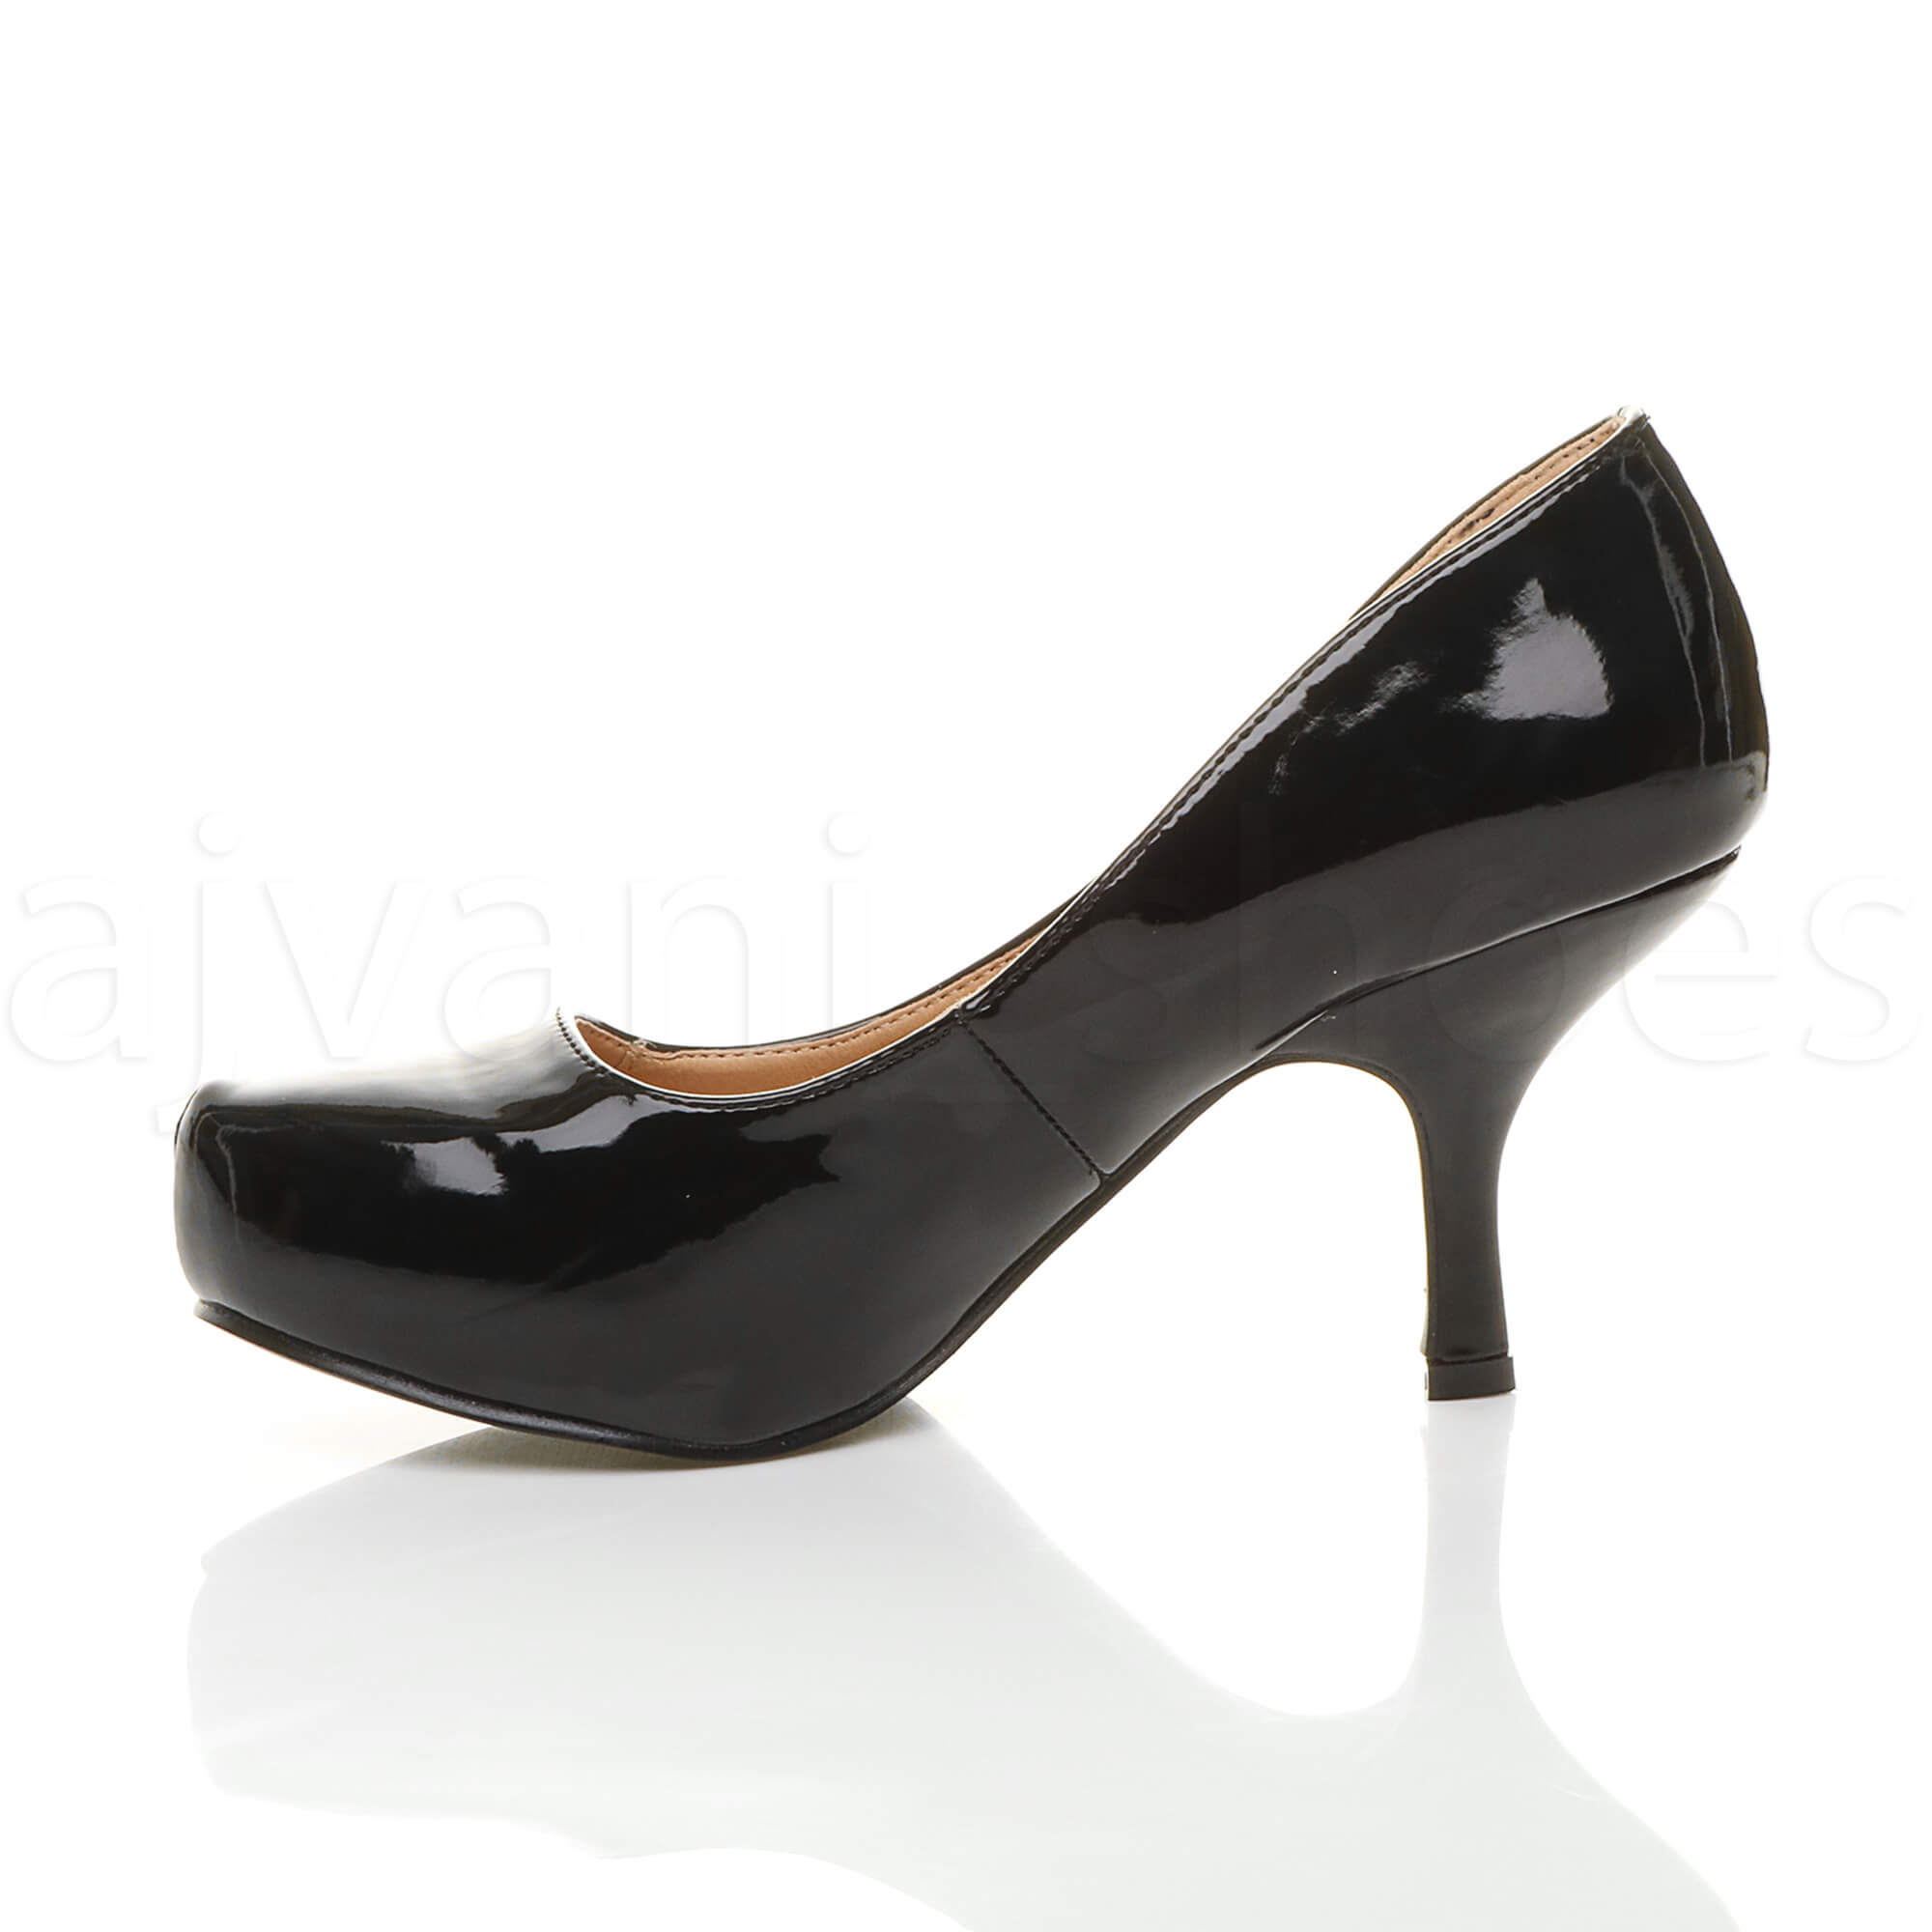 WOMENS-LADIES-LOW-MID-HEEL-PUMPS-CONCEALED-PLATFORM-WORK-COURT-SHOES-SIZE